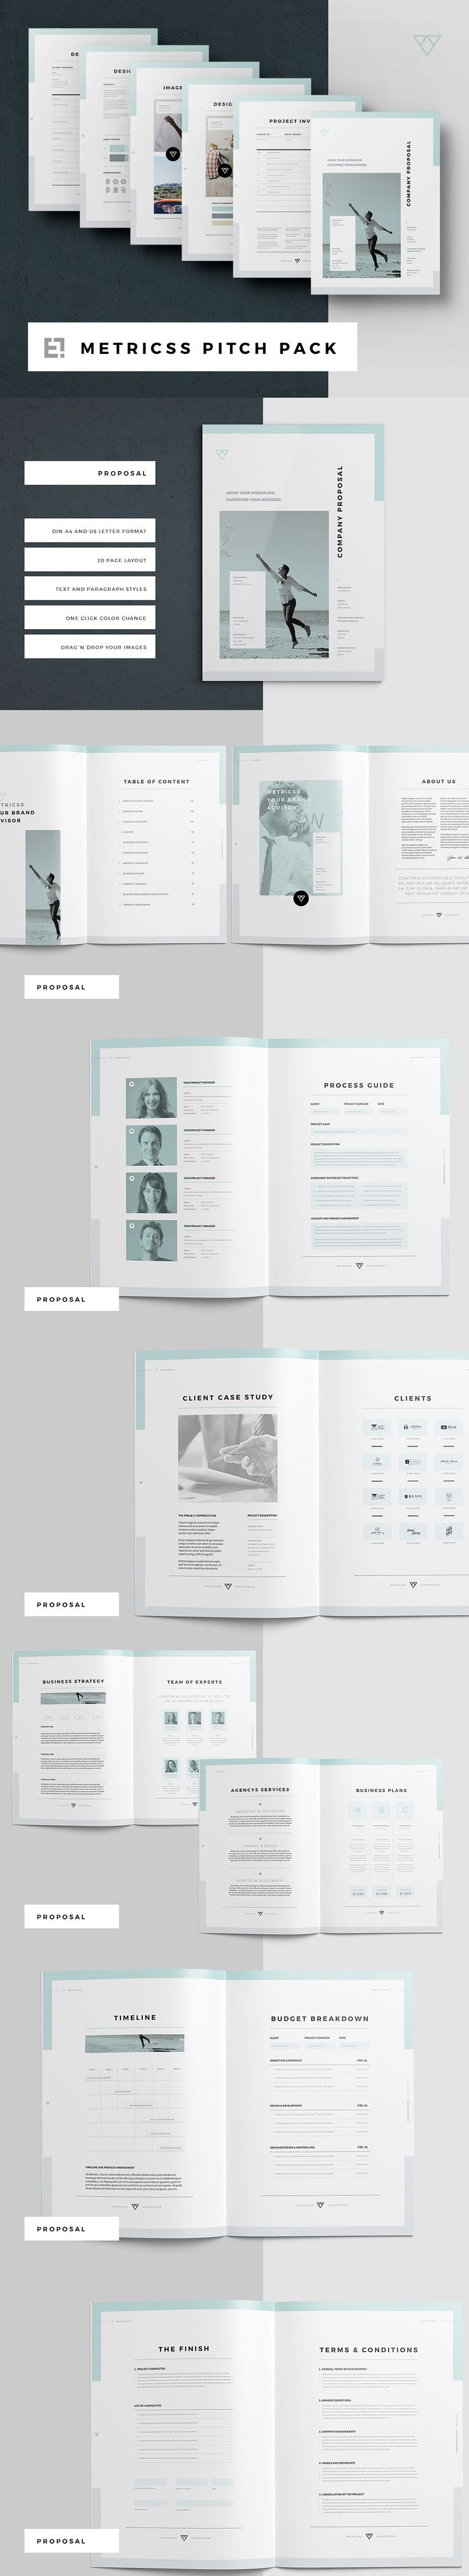 19 Best Business Design Resources Images On Pinterest Powerpoint Bridge From Ceo Pack The All Purpose Modern Bundle Cuts